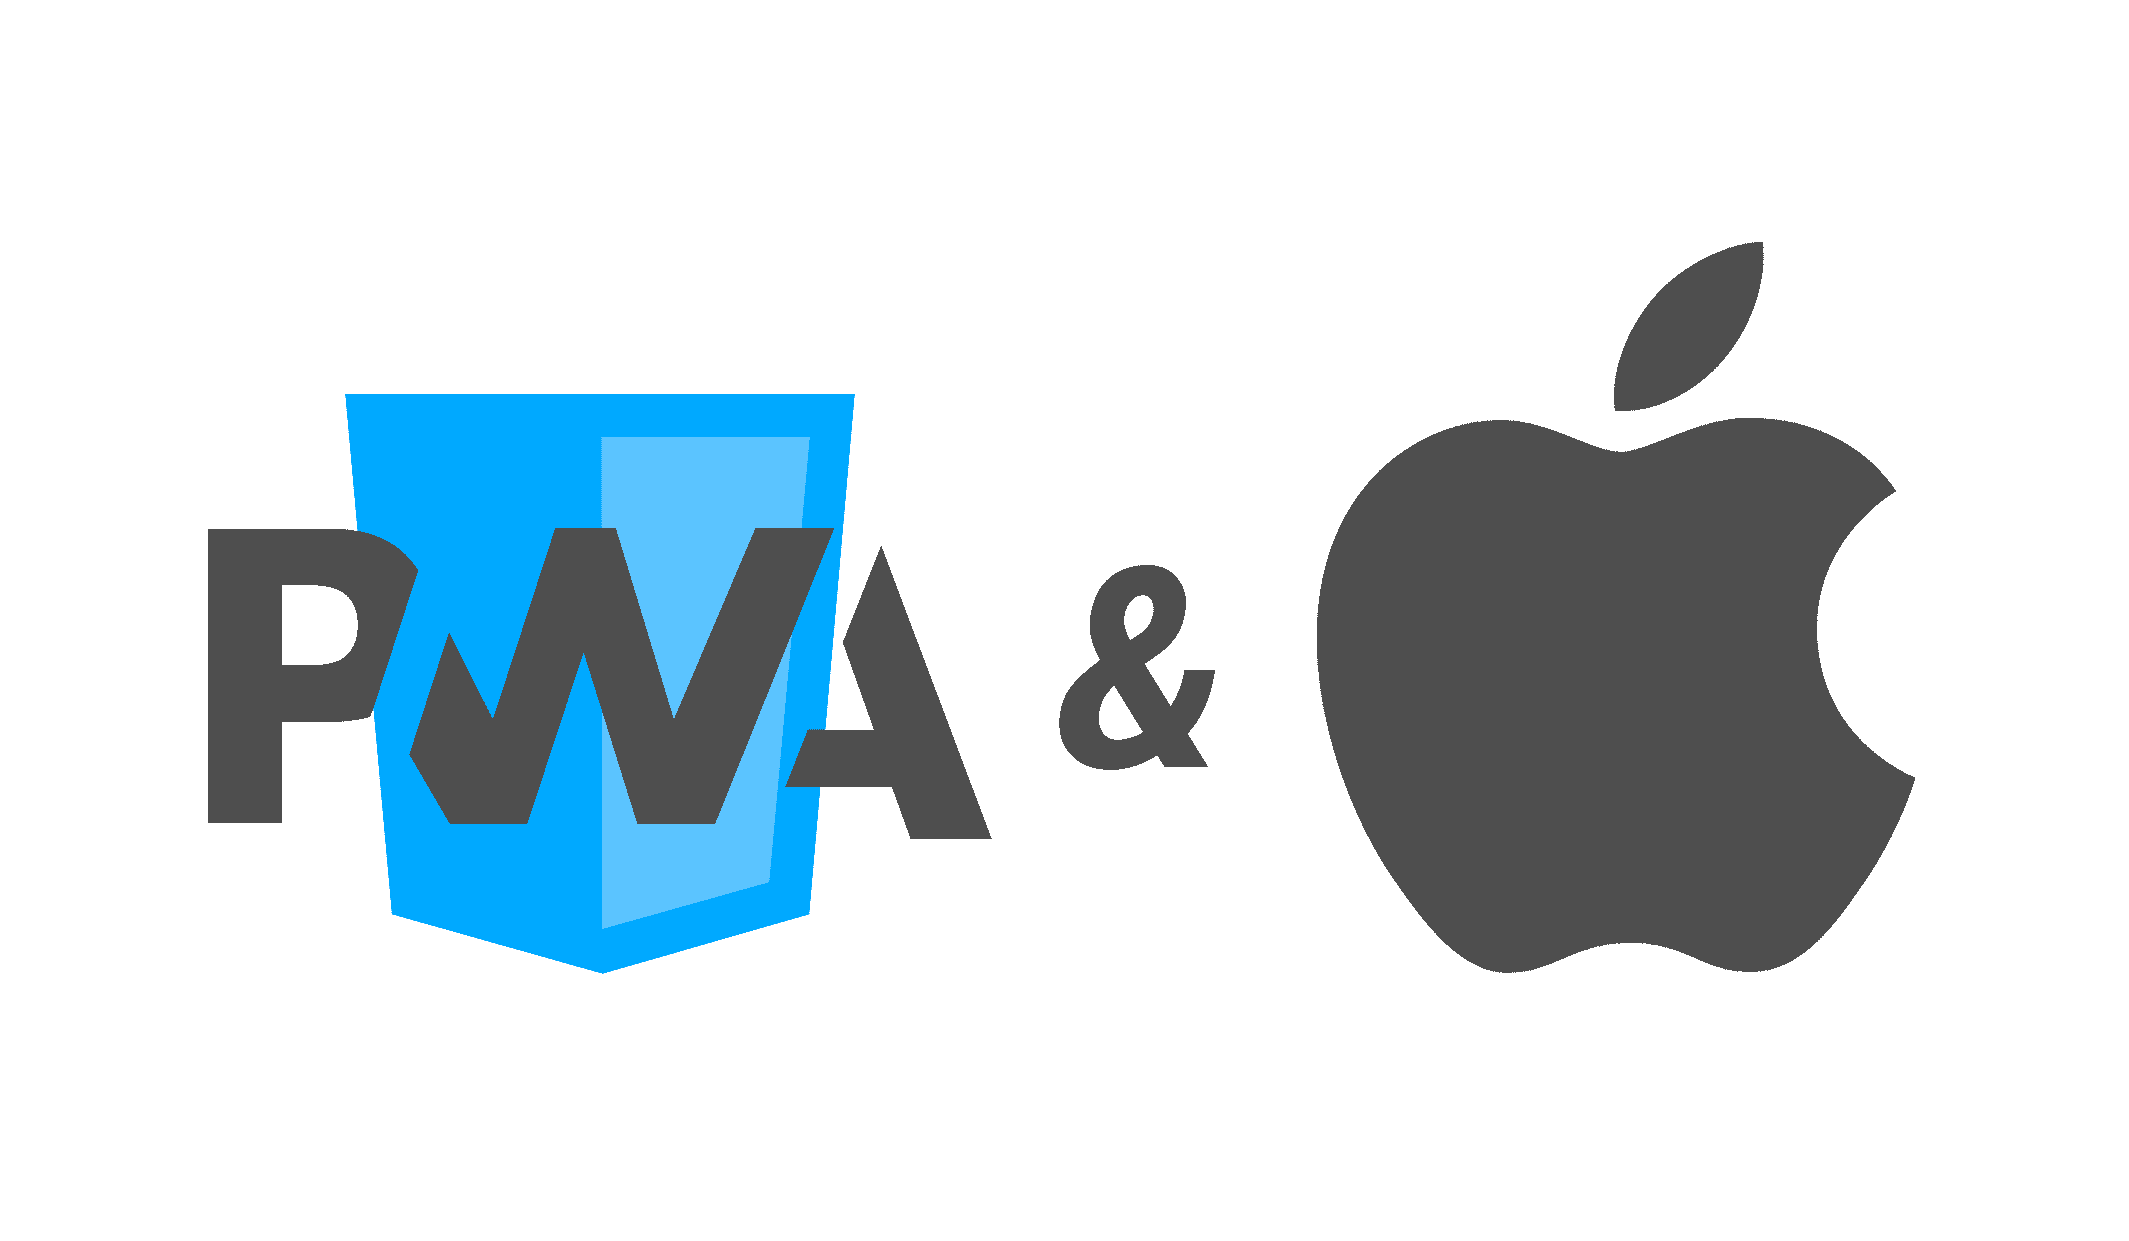 Altering expectations by improving PWA on iOS | Responsive Web Design